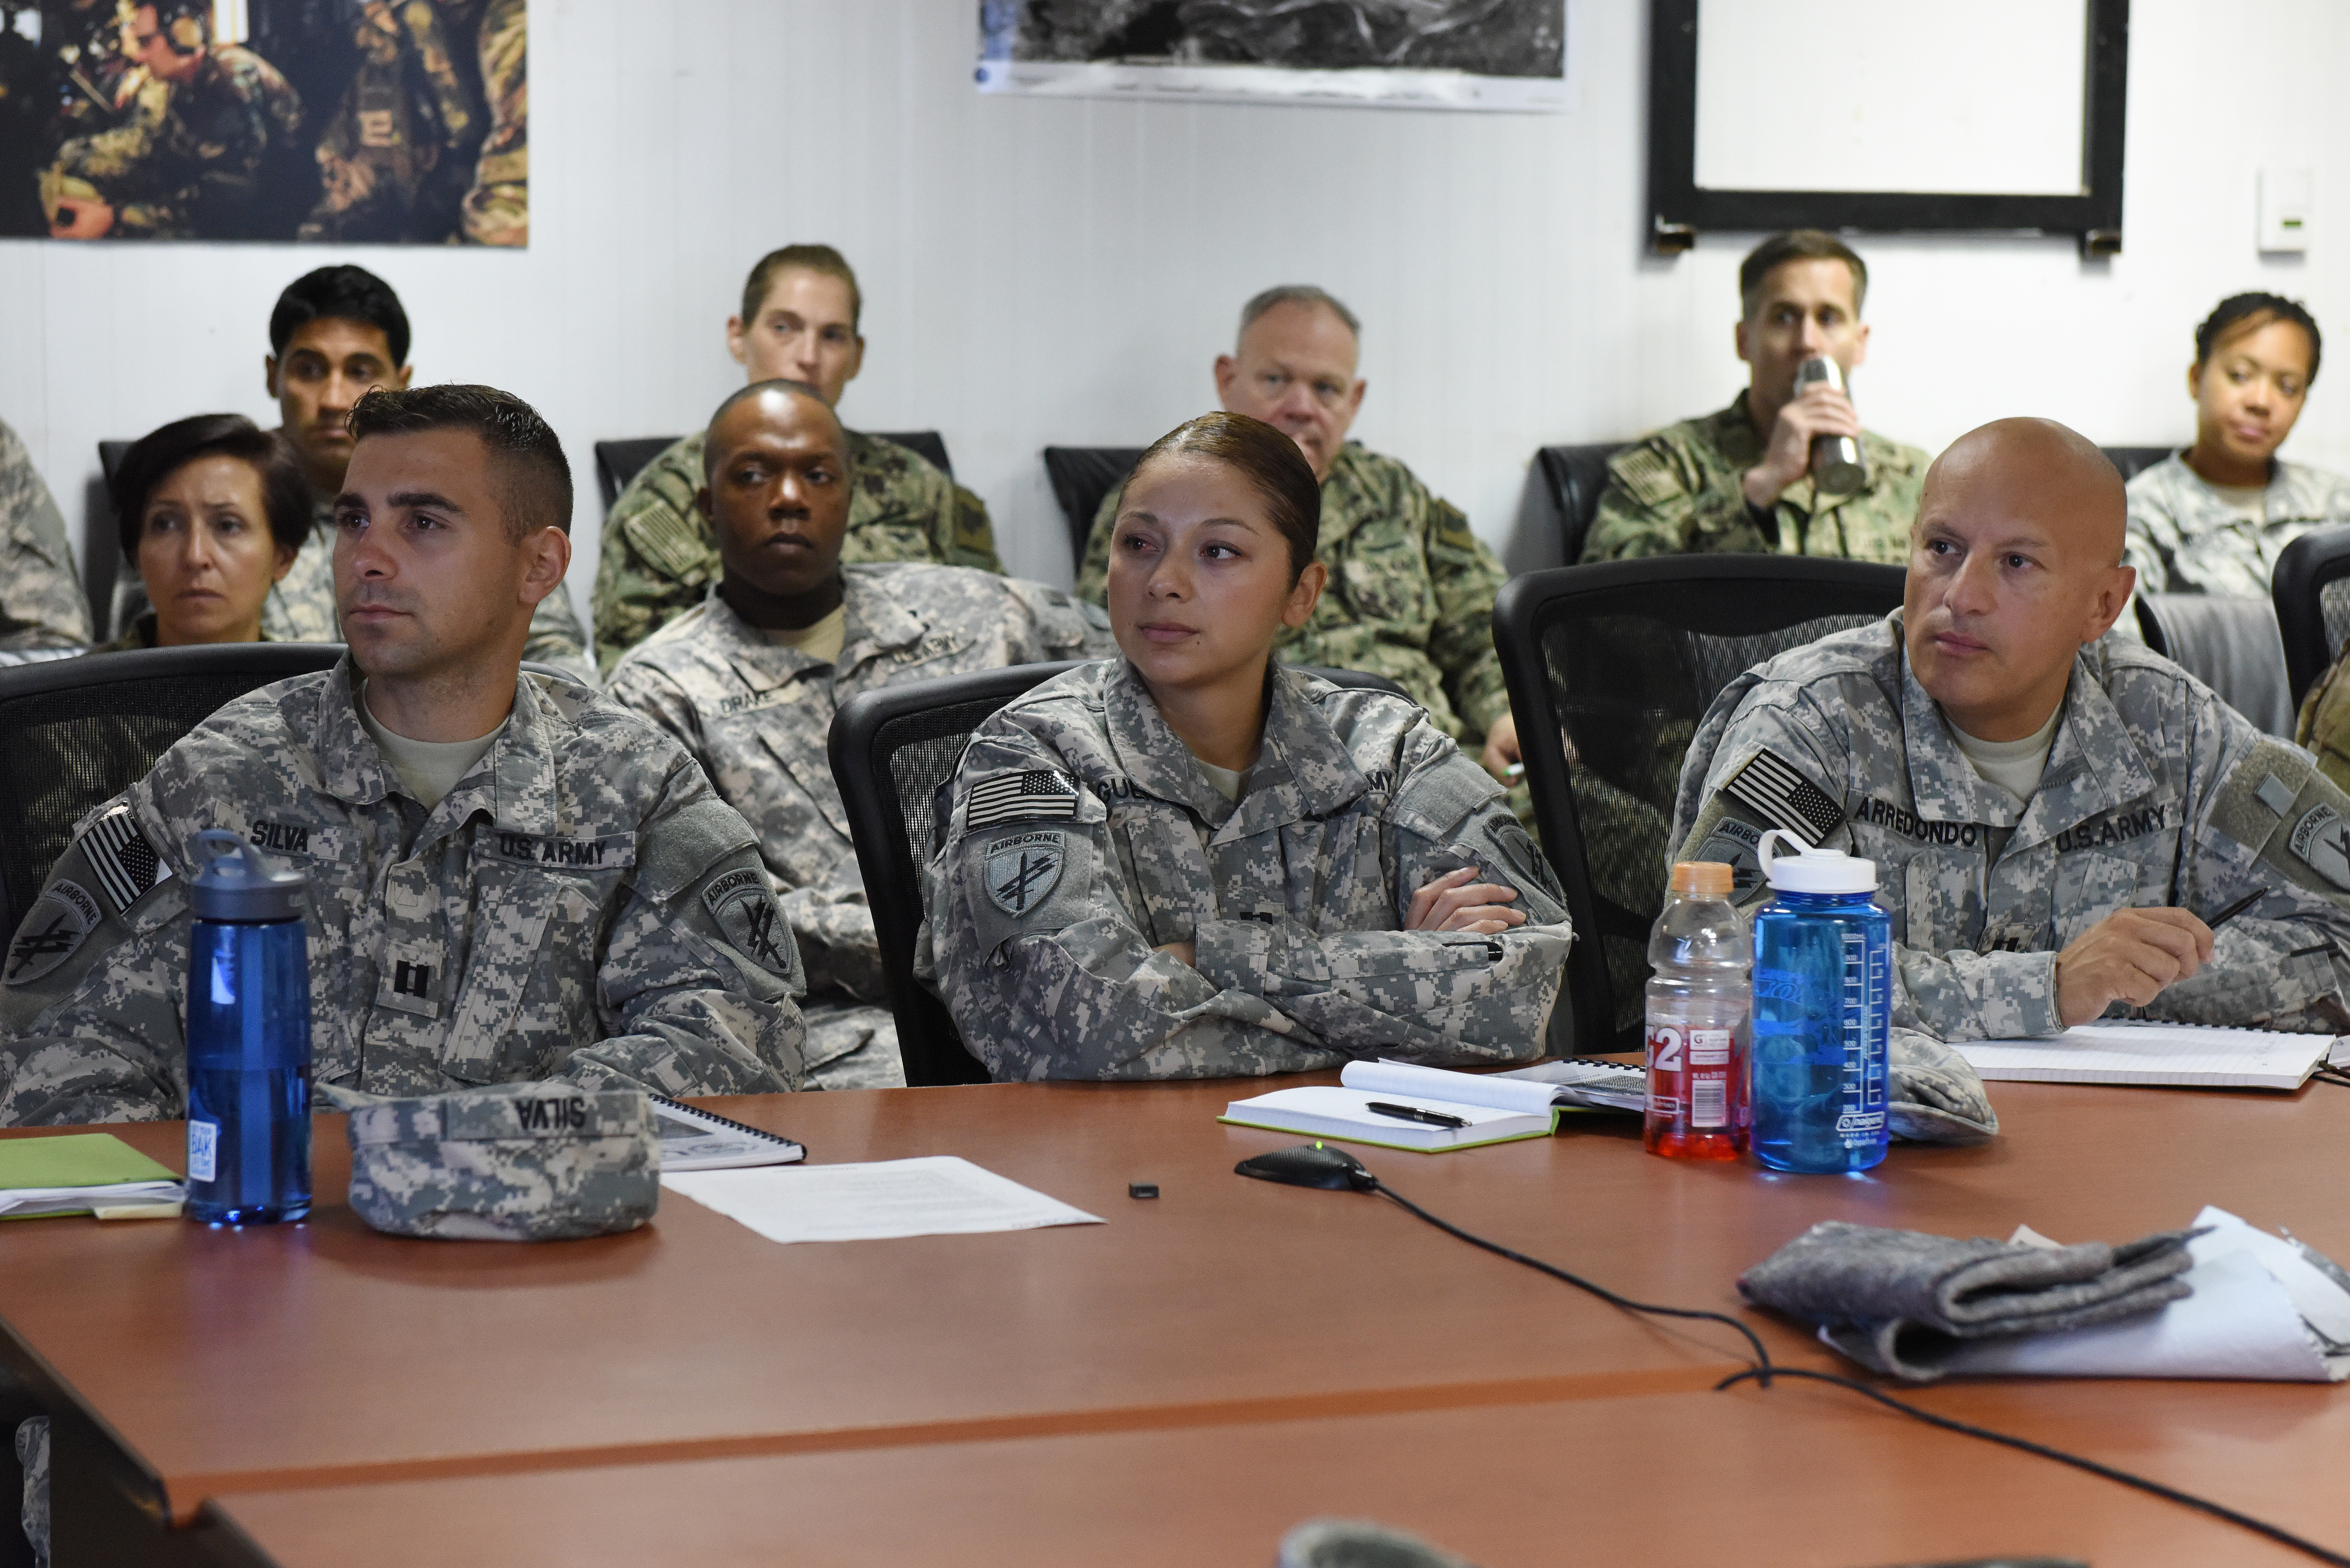 Combined Joint Task Force-Horn of Africa service members assigned at Camp Lemonnier, Djibouti, attend a joint humanitarian operations course June 1, 2015.  The course highlighted international disaster response best practices and the military's role when supporting foreign humanitarian assistance and disaster response operations.  (U.S. Air Force photo by Staff Sgt. Maria Bowman)